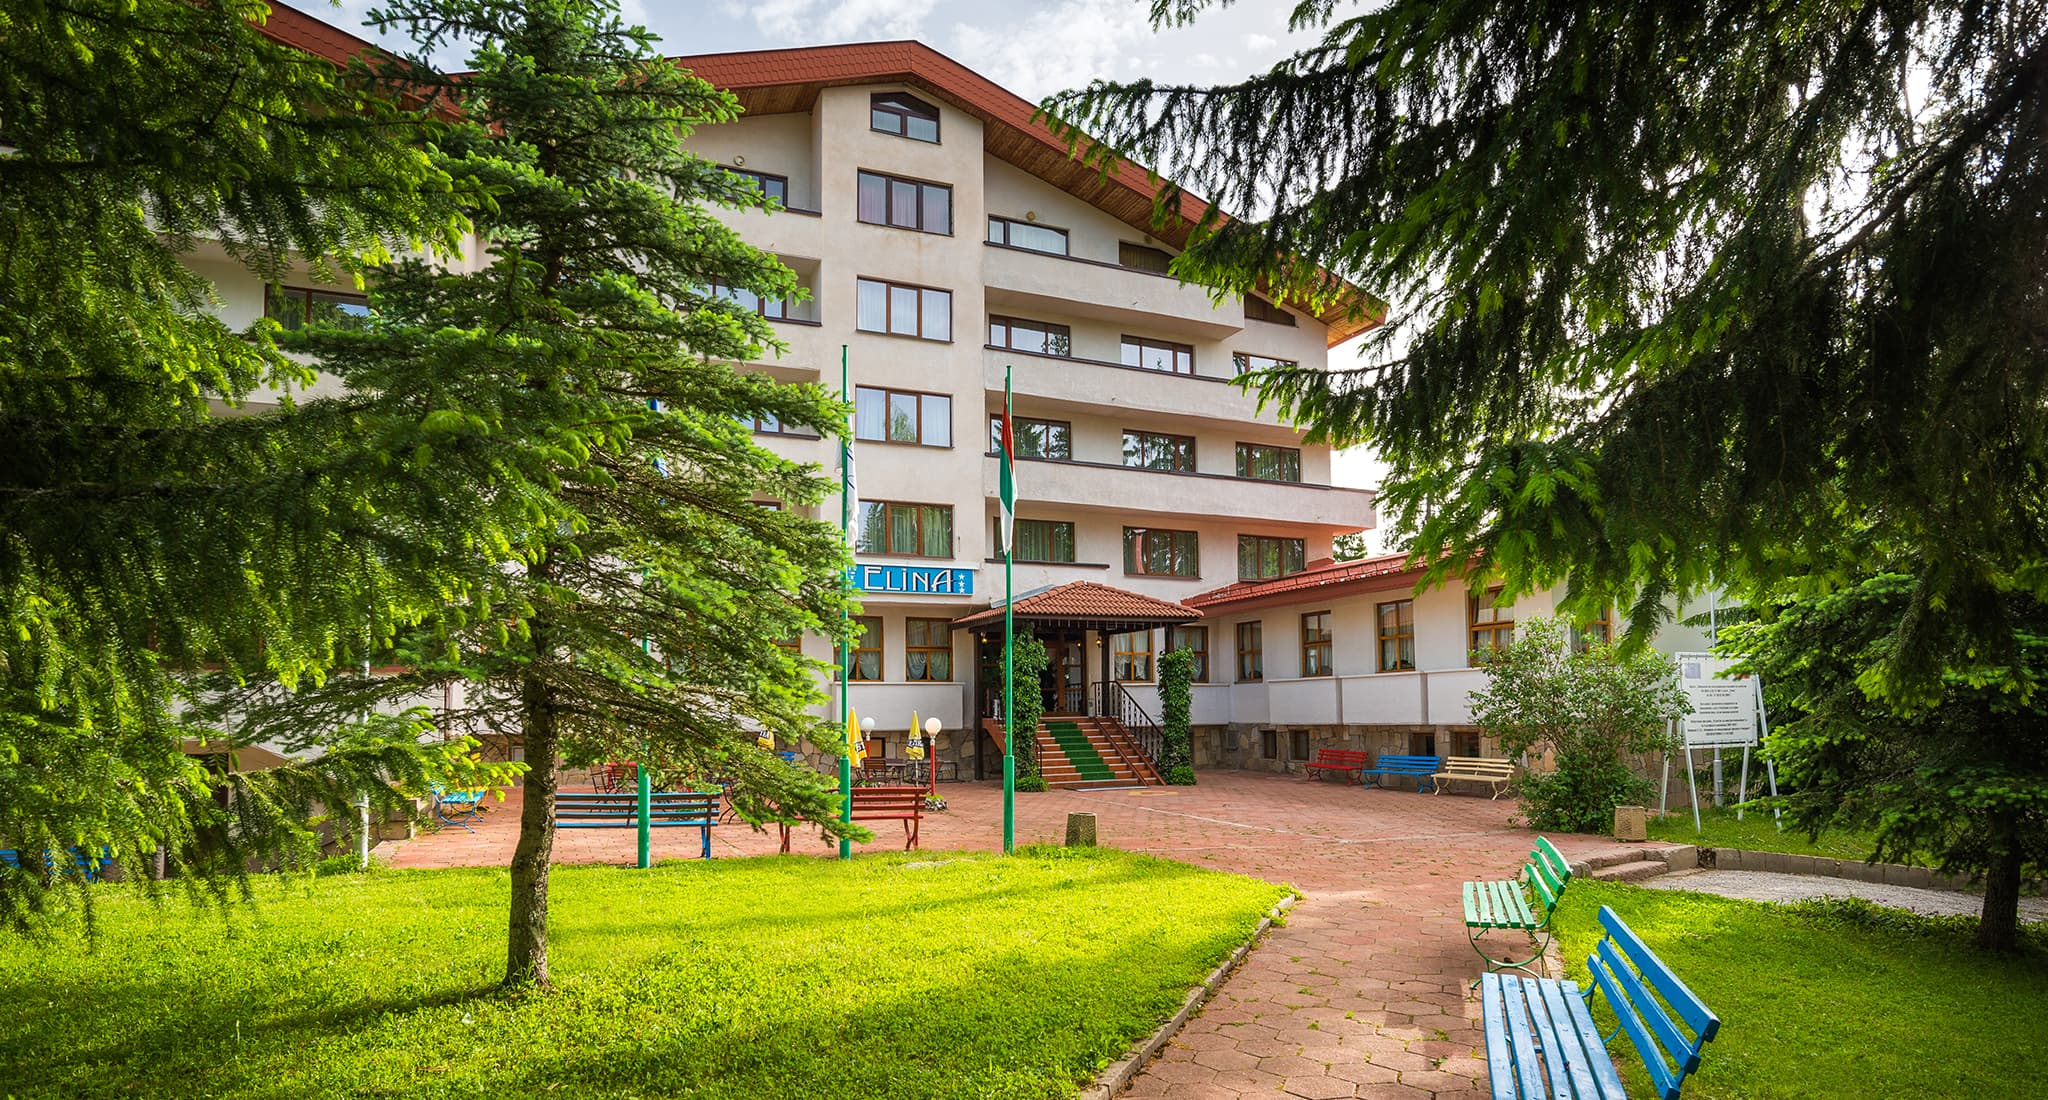 Elina Hotel - Pamporovo / General Information